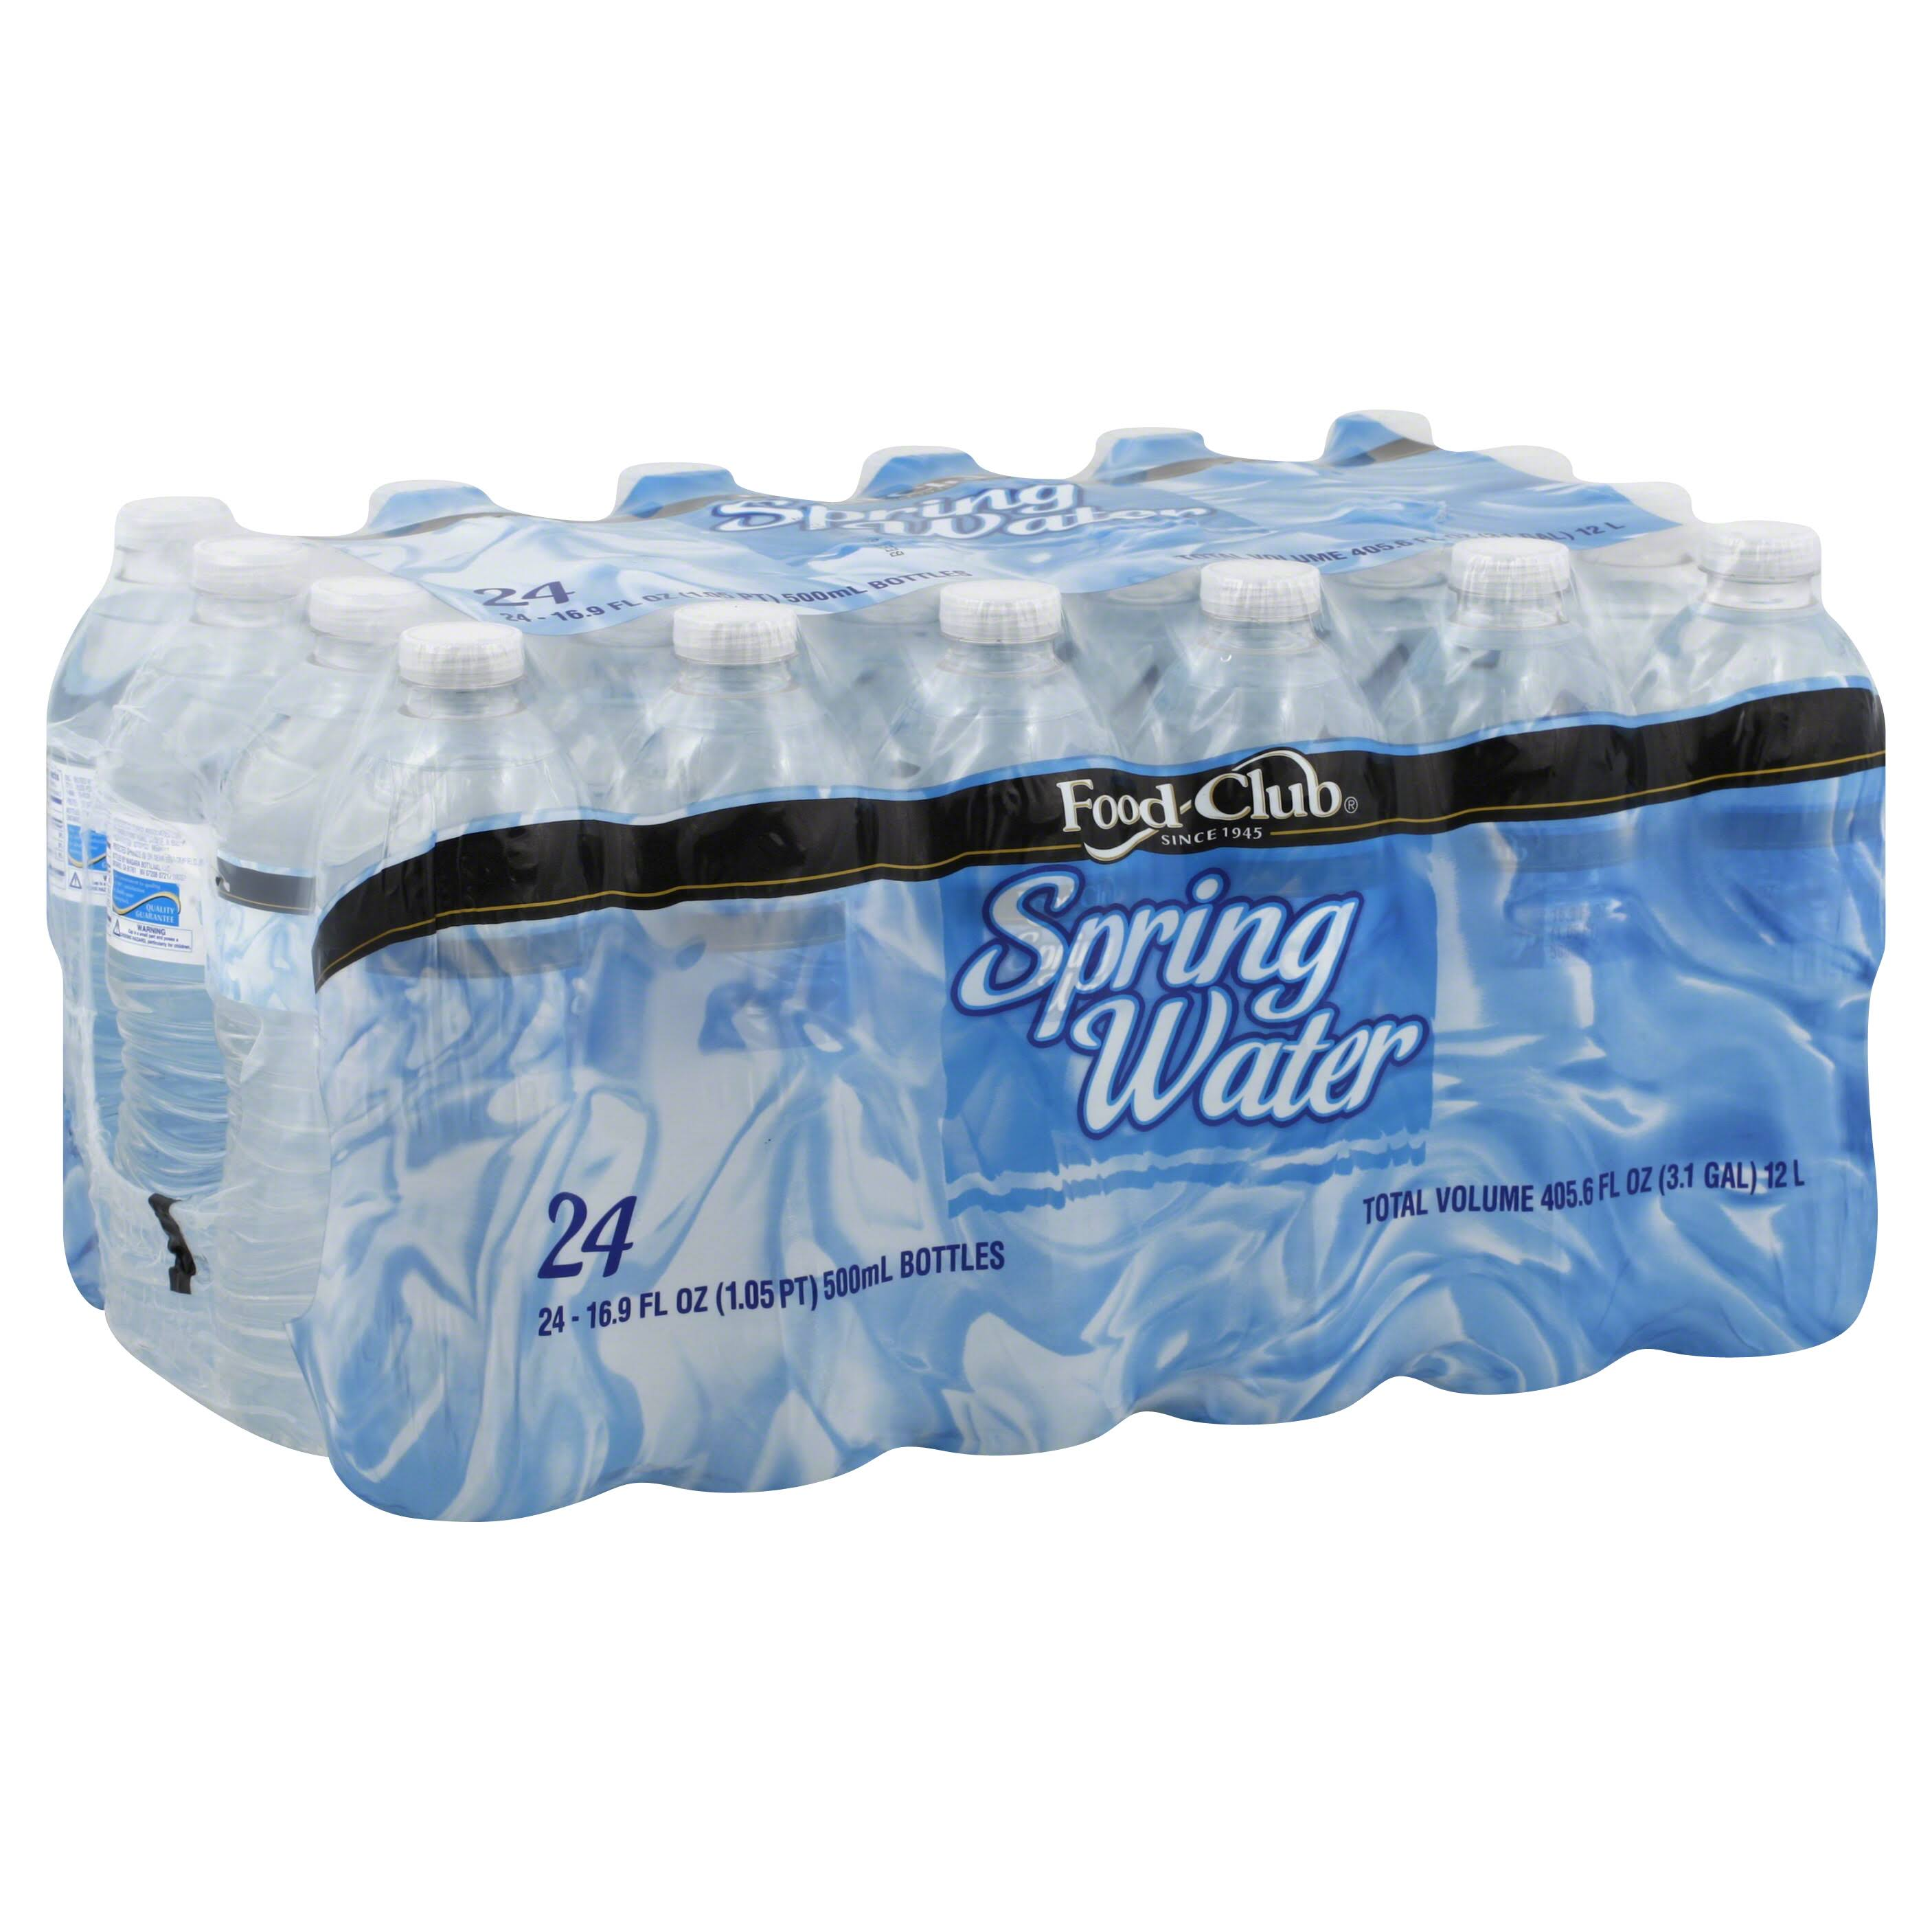 Food Club Water, Spring - 24 pack, 16.9 fl oz